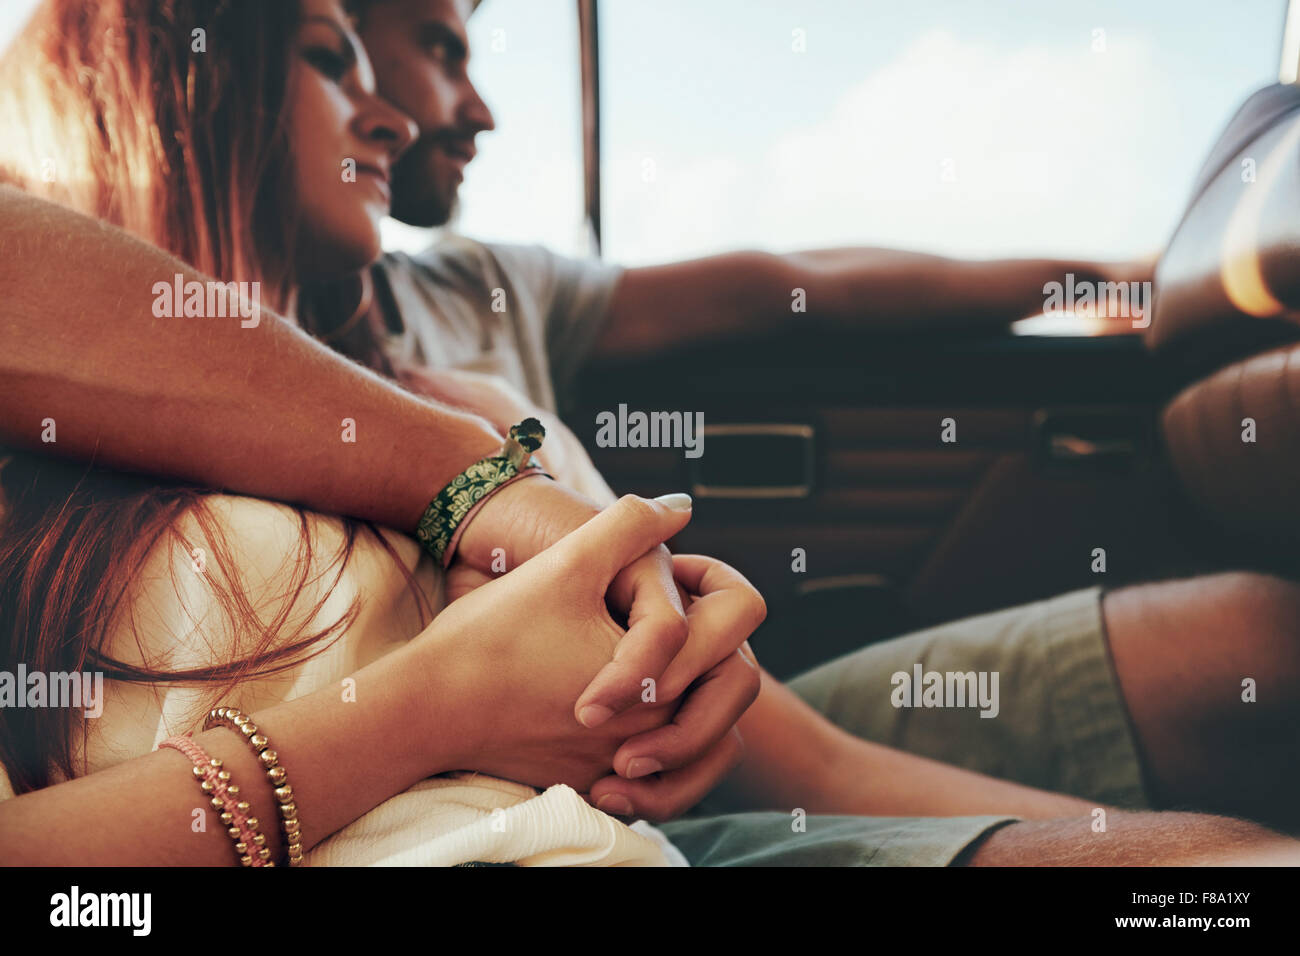 Affectionate young couple sitting in back seat of a car going on road trip. Focus on couple holding hands. - Stock Image